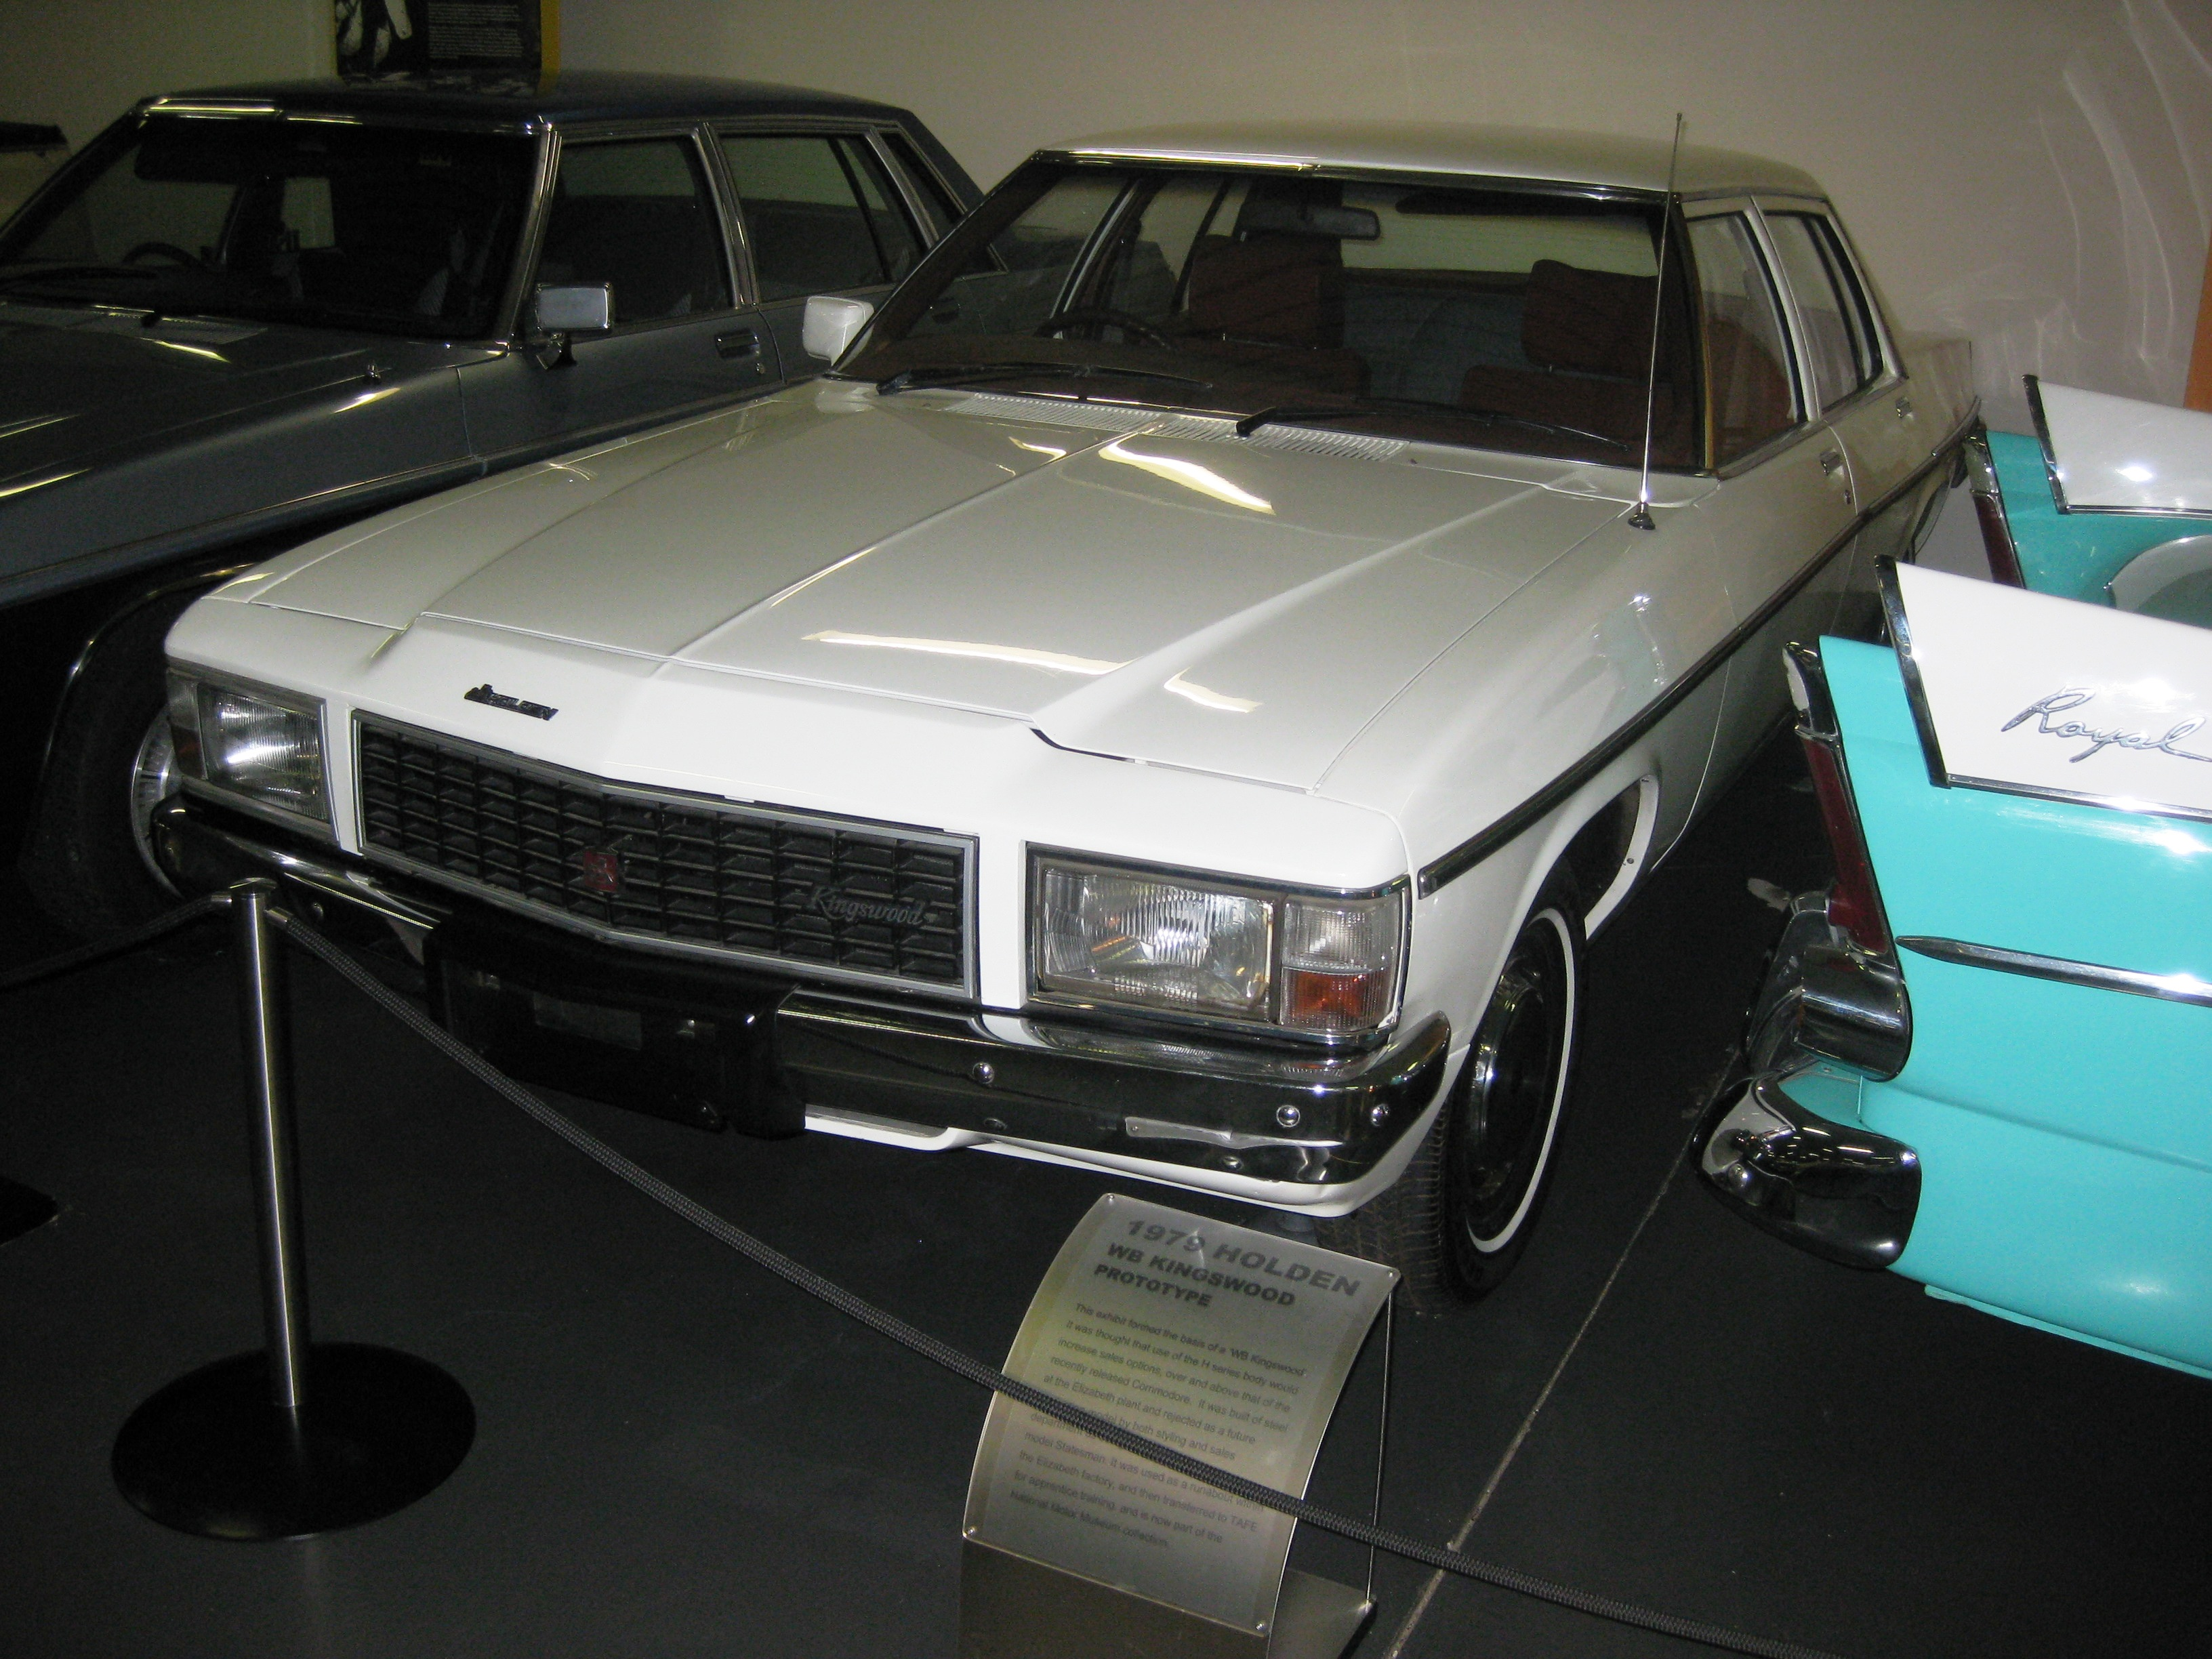 File:Holden WB Kingswood Sedan prototype (1979).jpg - Wikipedia ...